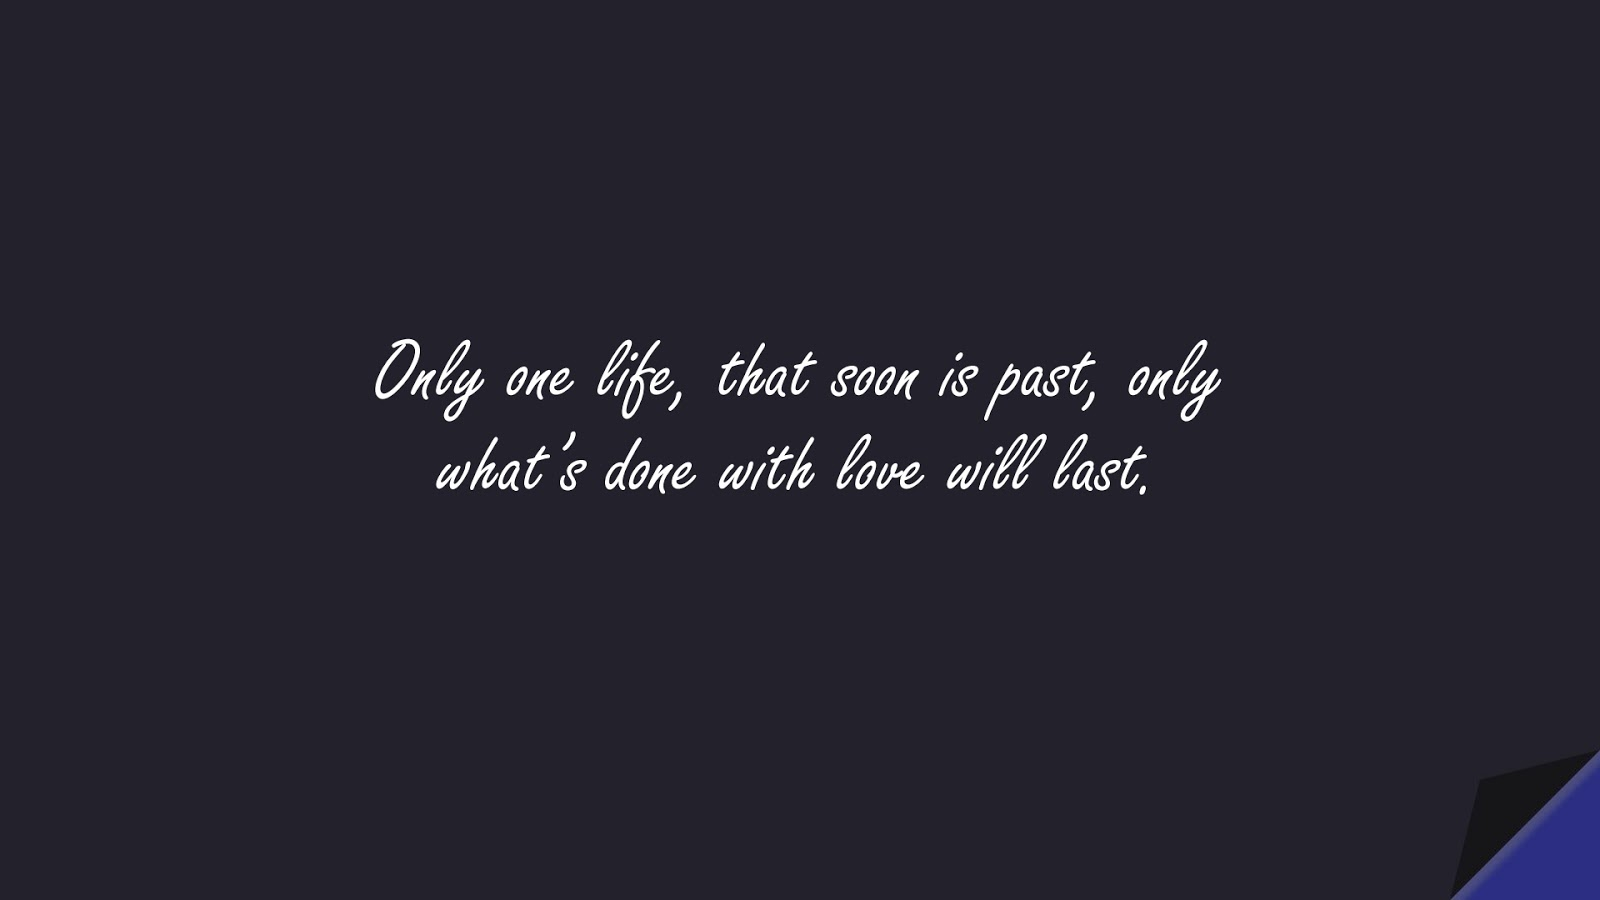 Only one life, that soon is past, only what's done with love will last.FALSE